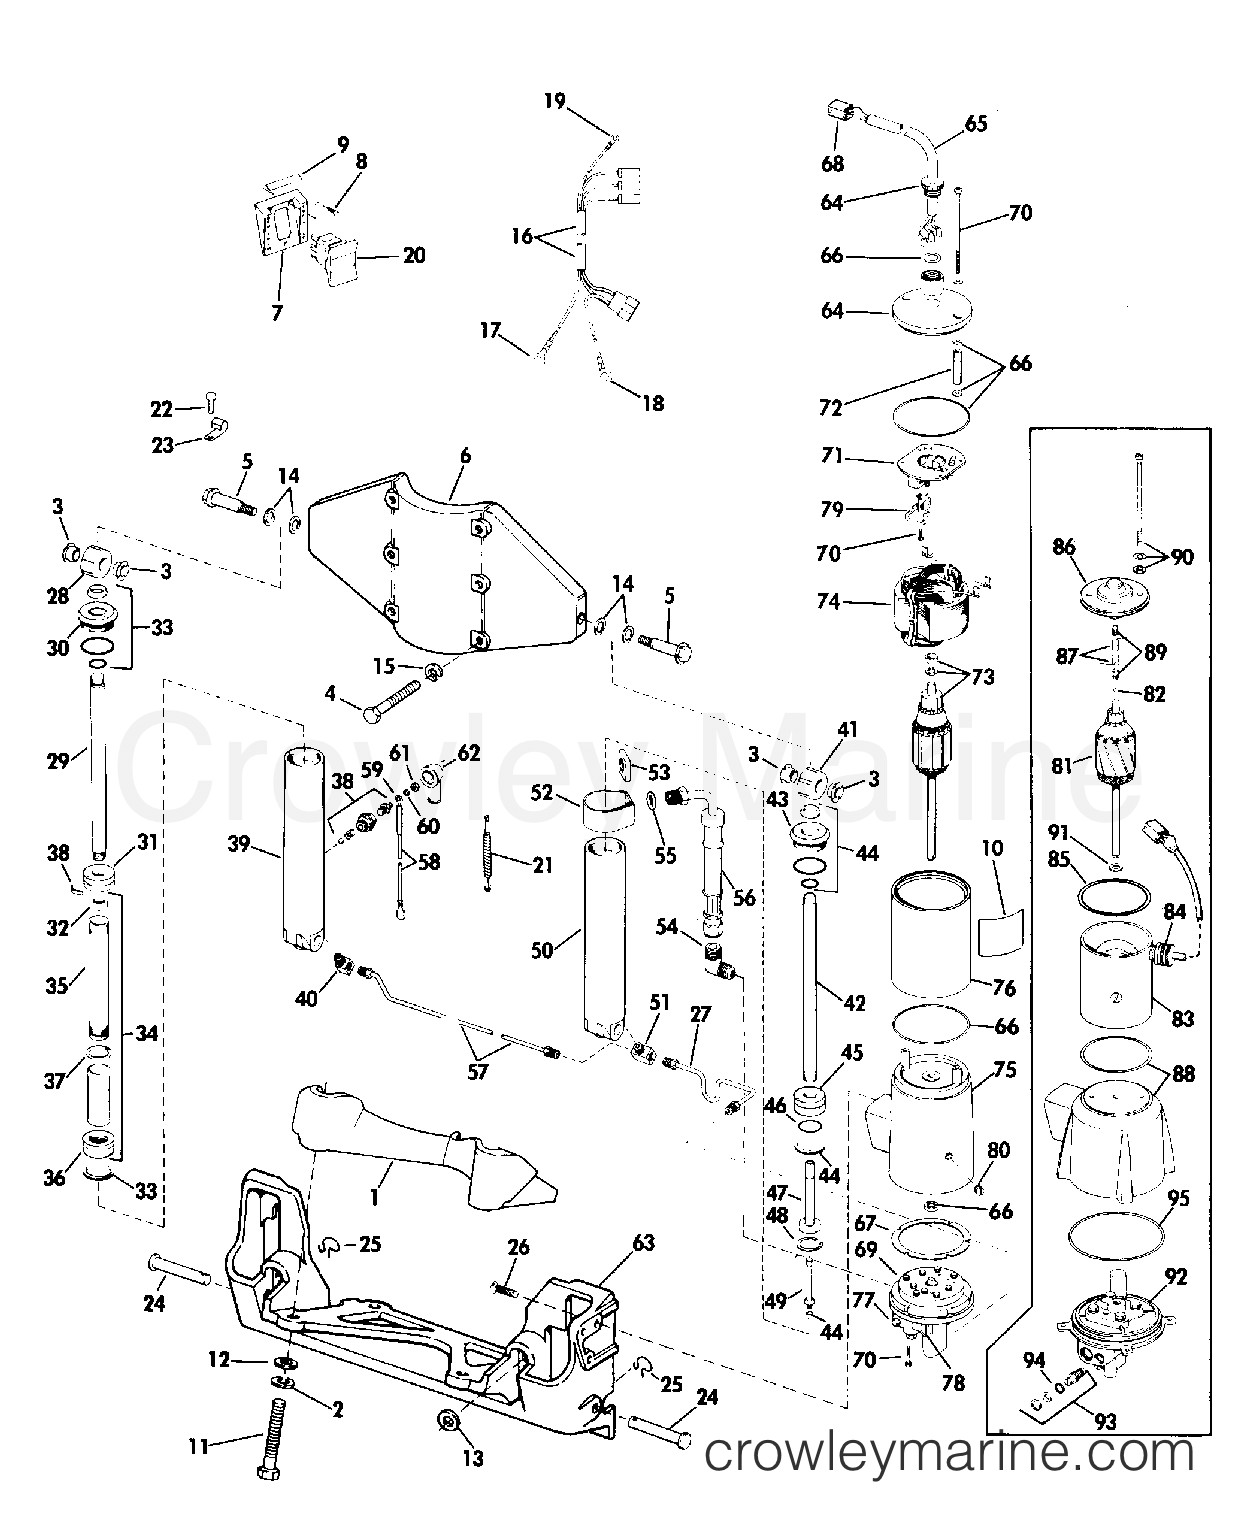 40 Hp Evinrude Parts Diagram Power Tilt and Trim 50 Hp 1975 Rigging Parts Accessories Of 40 Hp Evinrude Parts Diagram